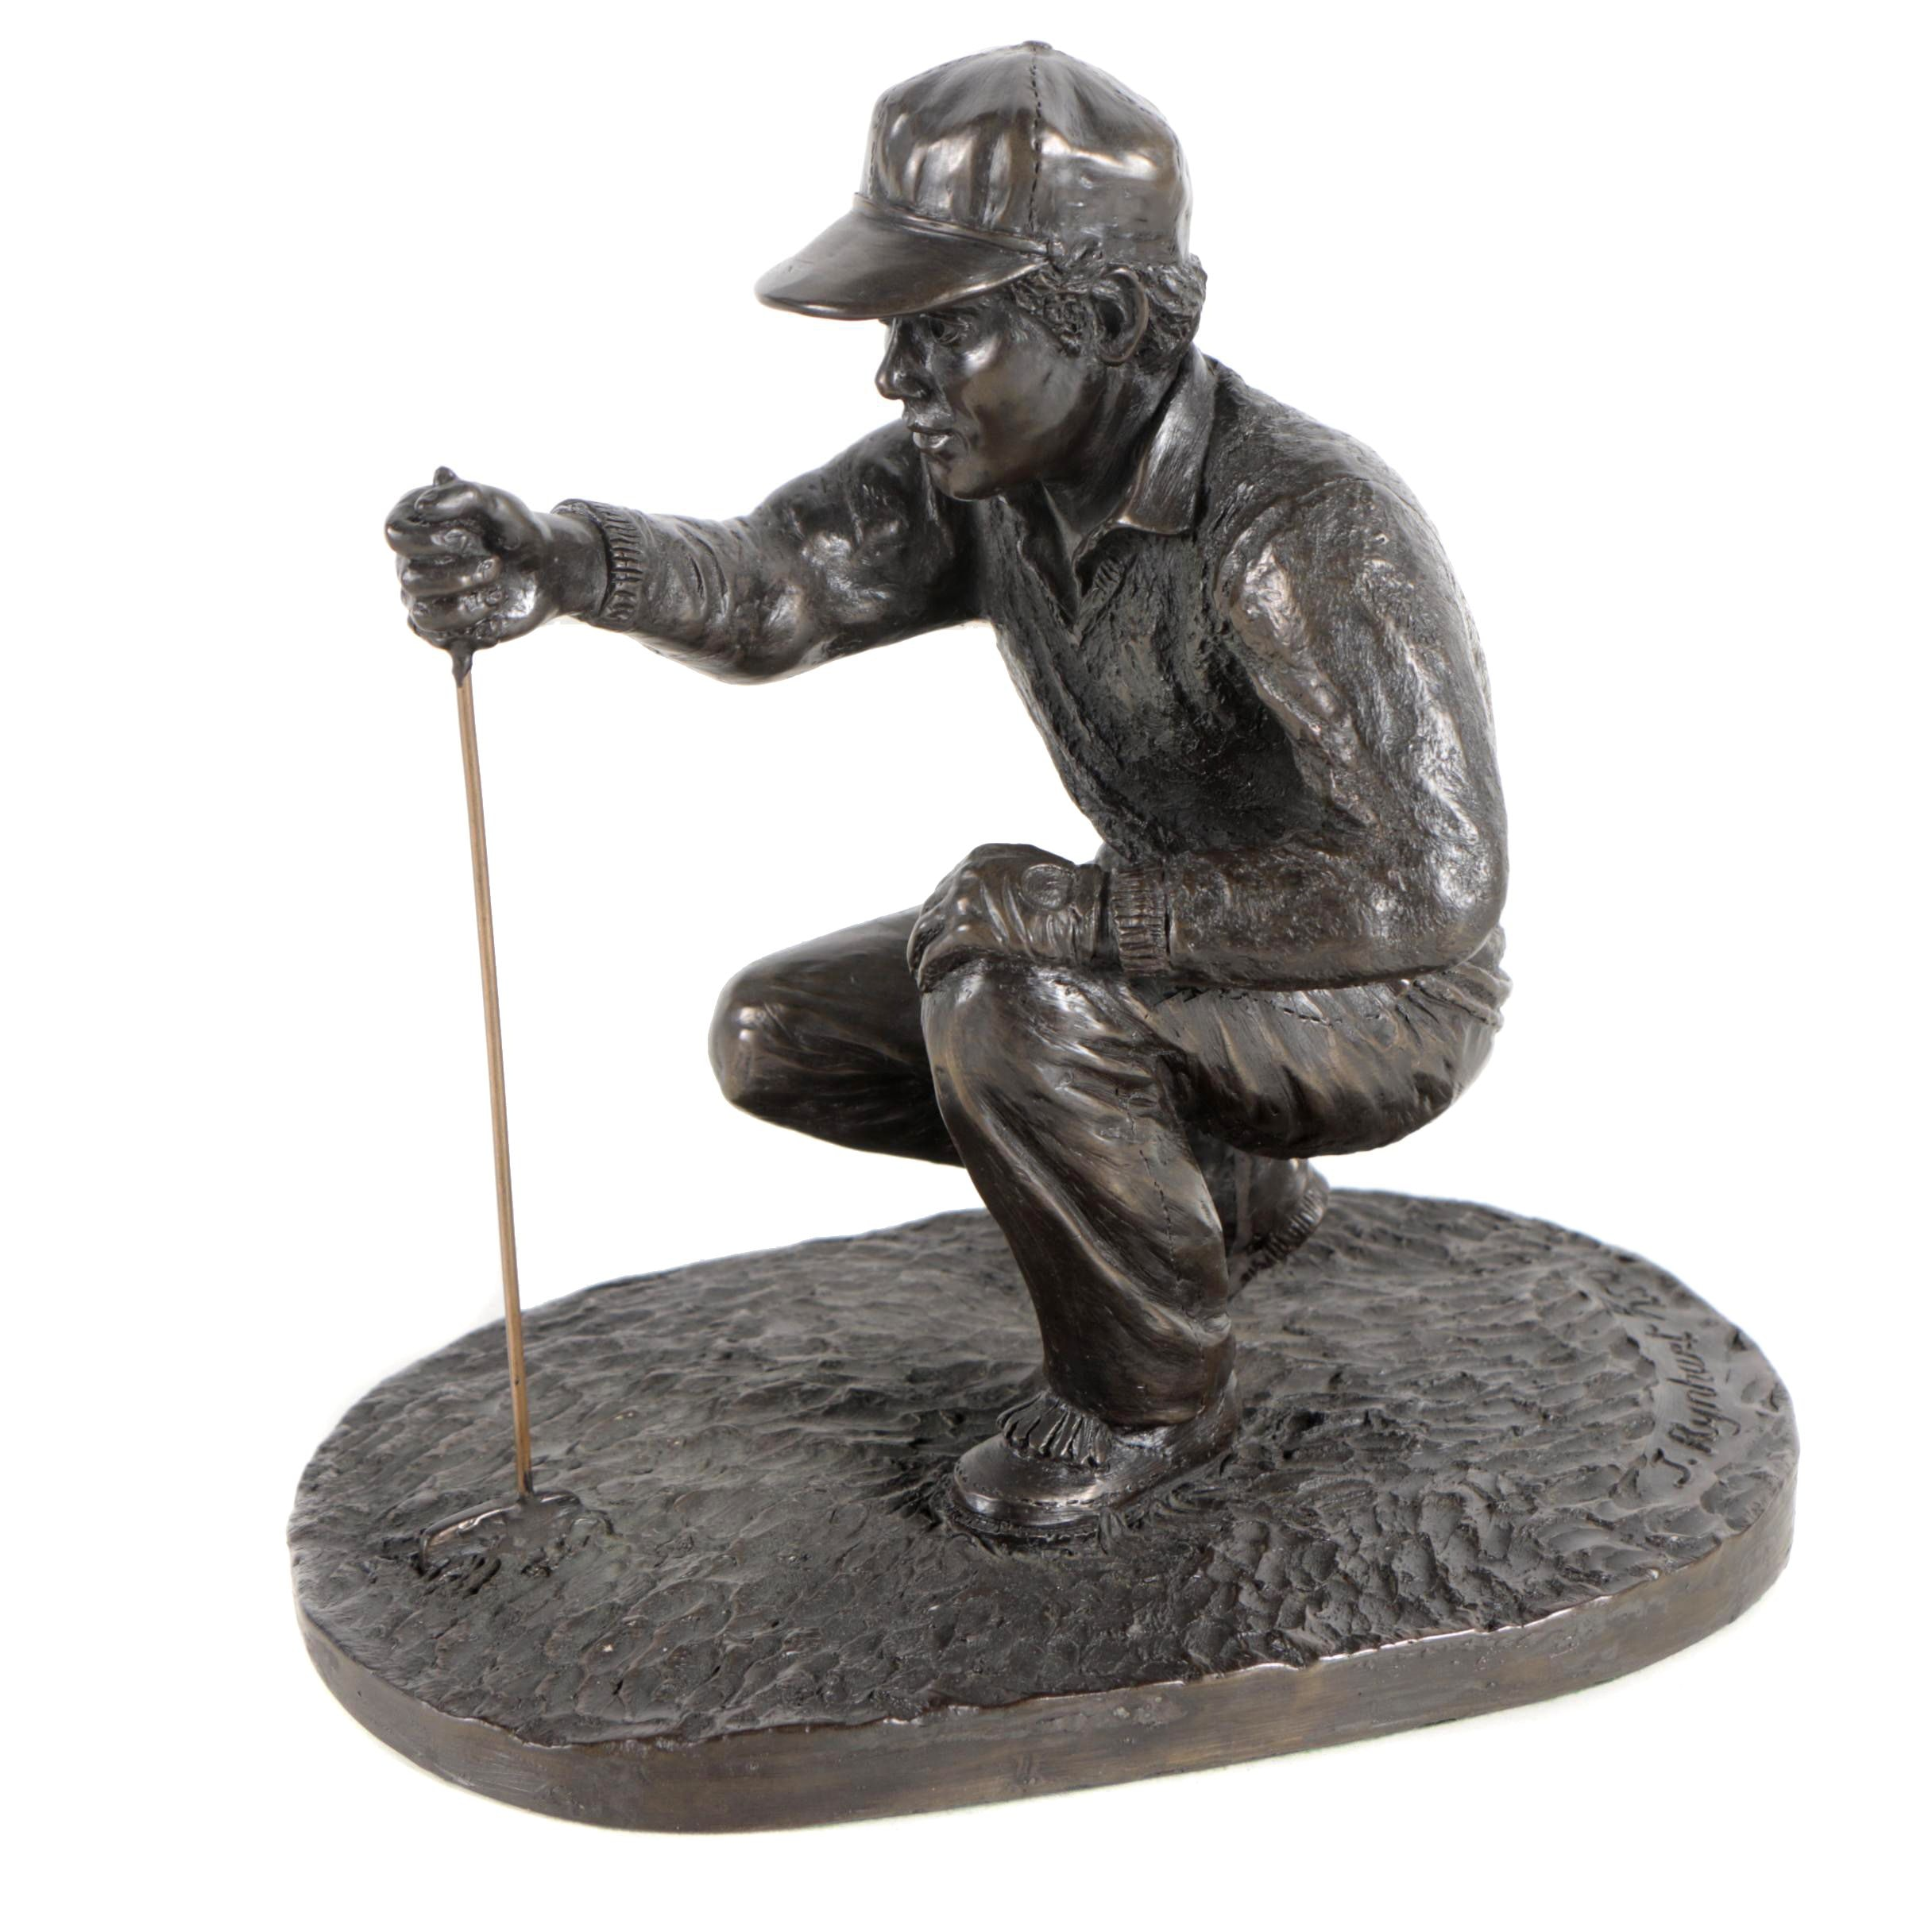 Jeanne Rynhart Limited Edition Cold Cast Bronze Sculpture of Golfer